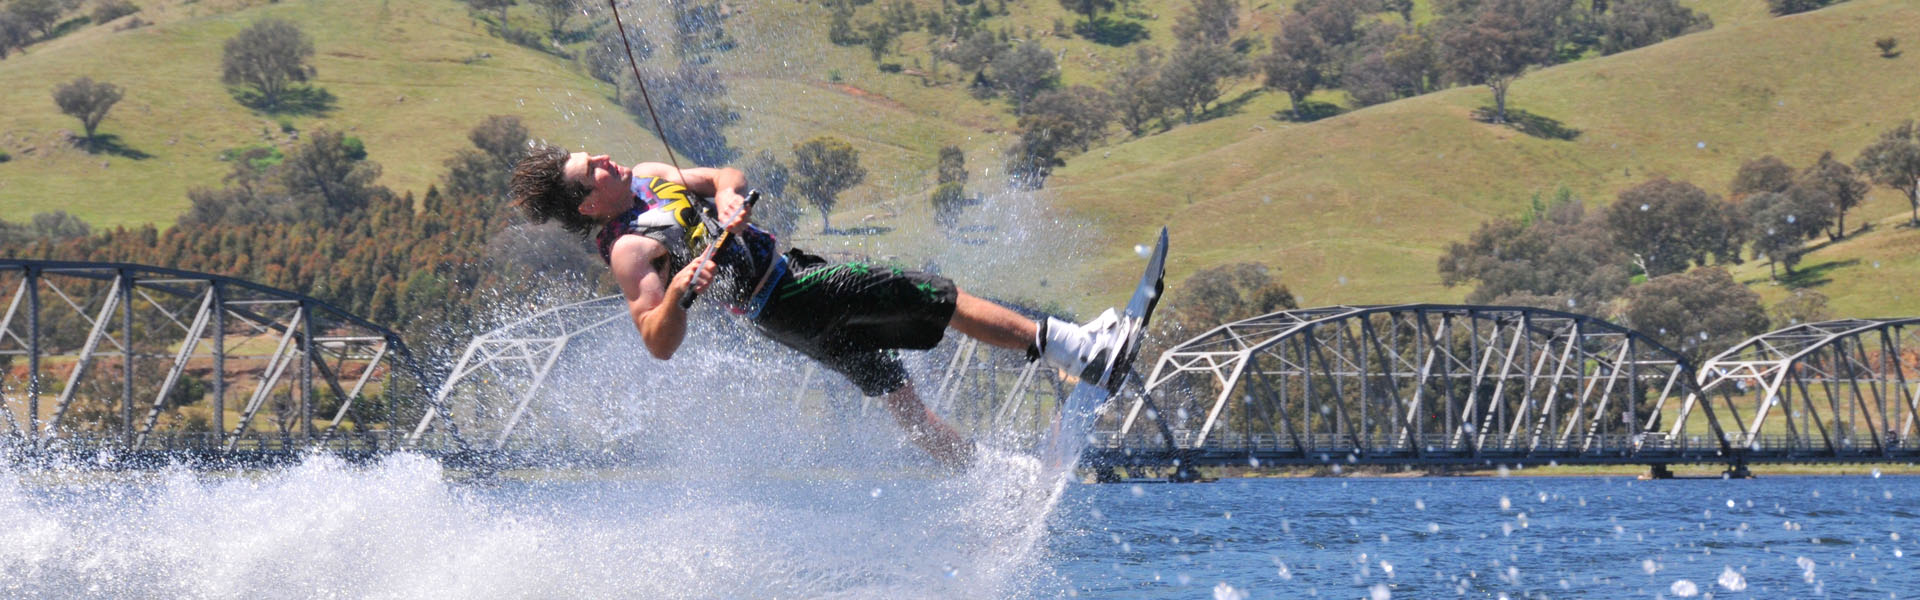 "<span style=""font-weight: bold; font-size: 3em;"">Enjoy the Ride</span> <span style=""font-weight: bold; font-size: 1.1em;"">Adventure Ski is a service based water sports business operating in the Albury Wodonga region featuring fun-packed, adrenaline based rides and entertainment. </span>"